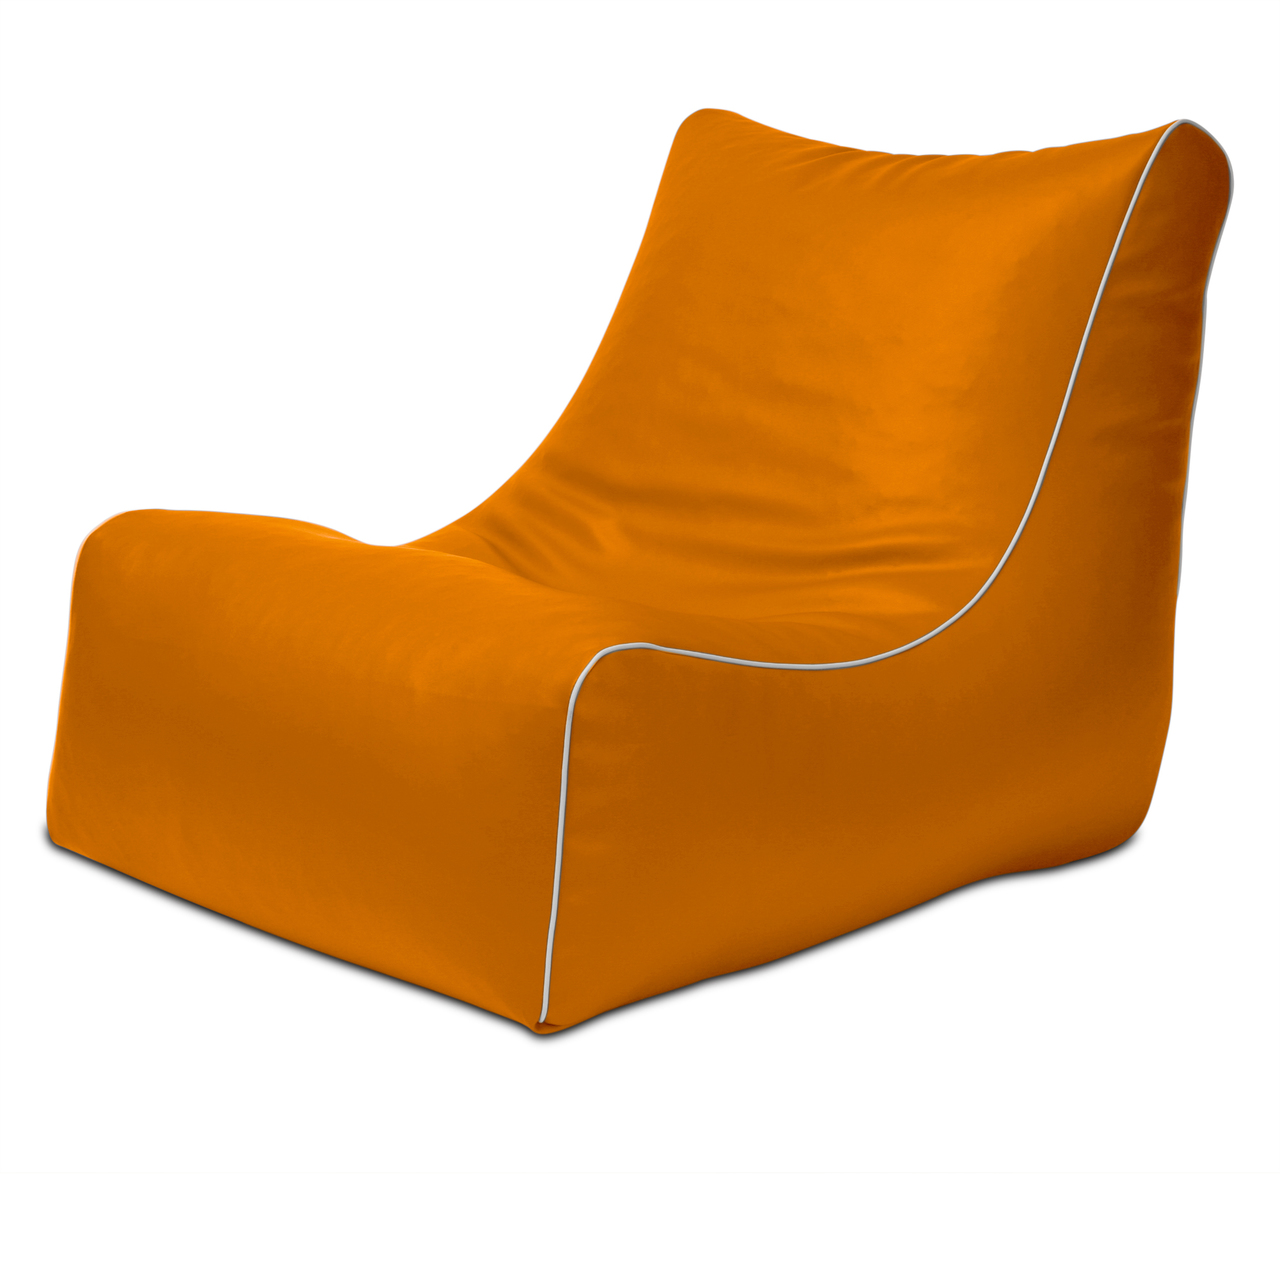 Retro L-Shape in orange